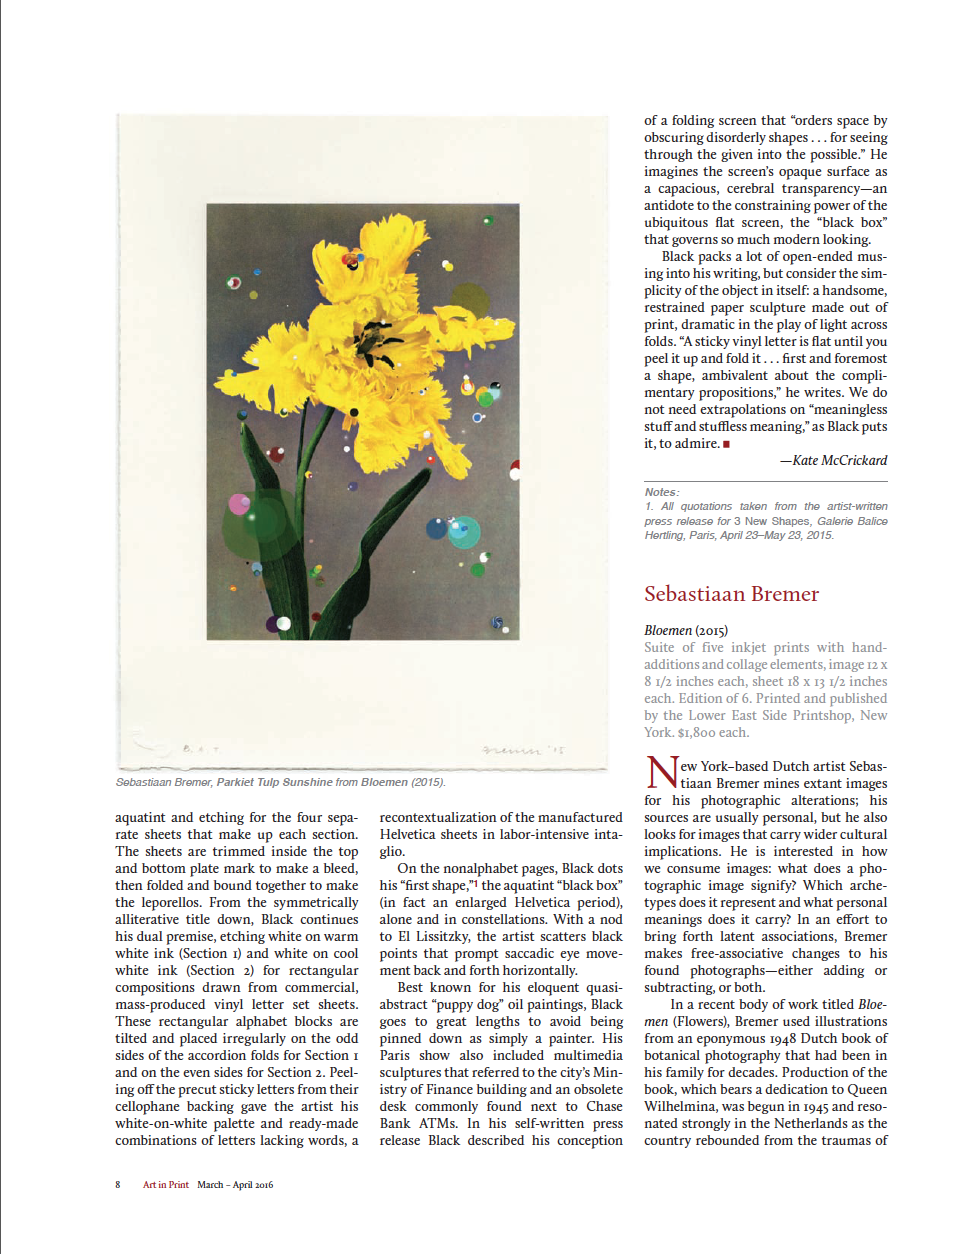 Sebastiaan Bremer in Art in Print  - Global Journal of Prints and Ideas, Volume 5, Number 6March - April 2016